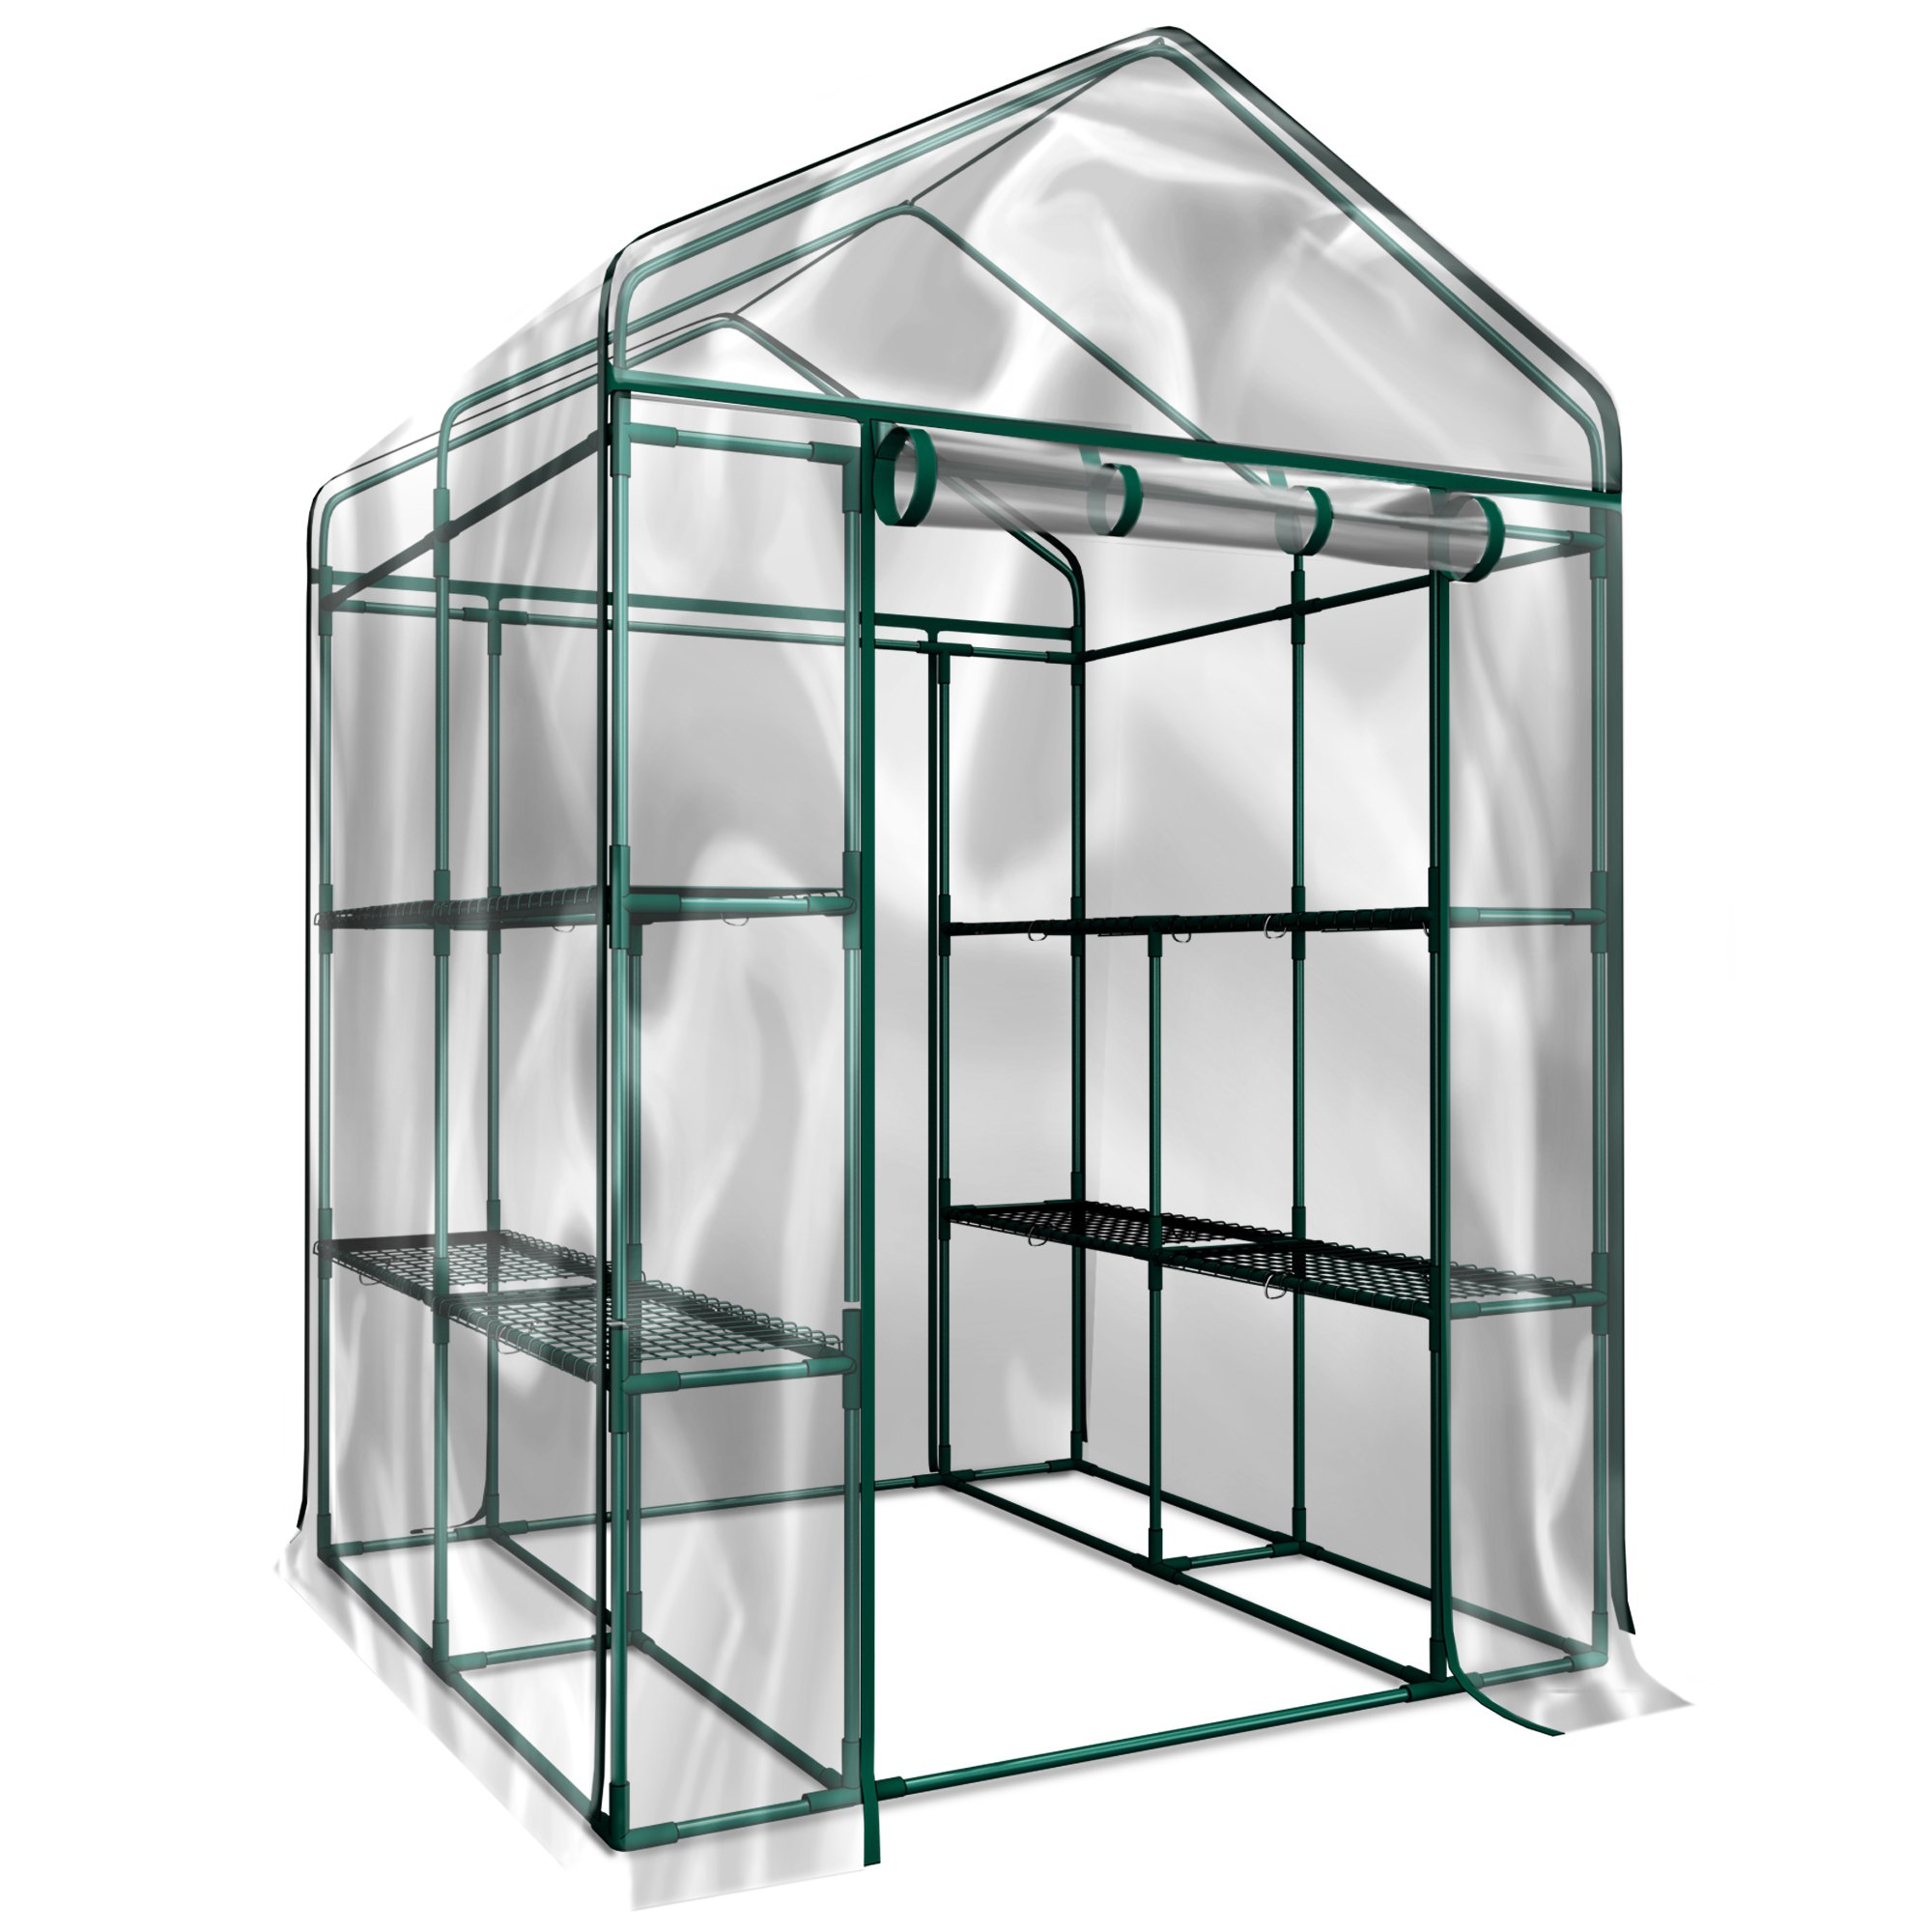 Green House HC-4202 Walk-in Greenhouse- Indoor Outdoor with 12 Sturdy Shelves-Grow Plants,